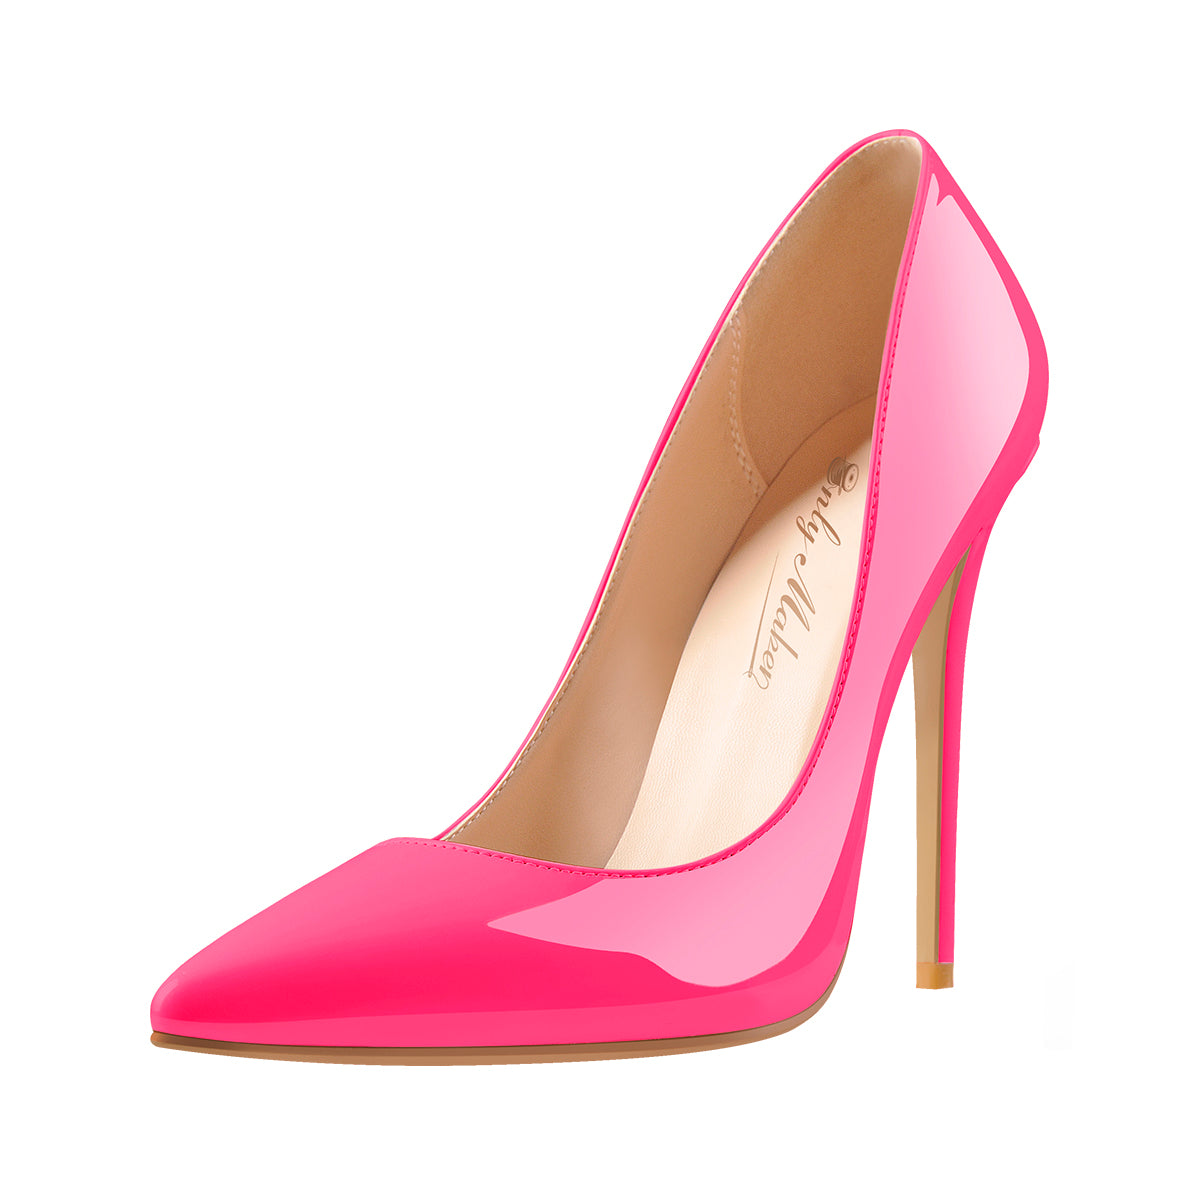 8cm 10cm 12 cm Rose Red Pointed Toe Slip On High Heel Pumps